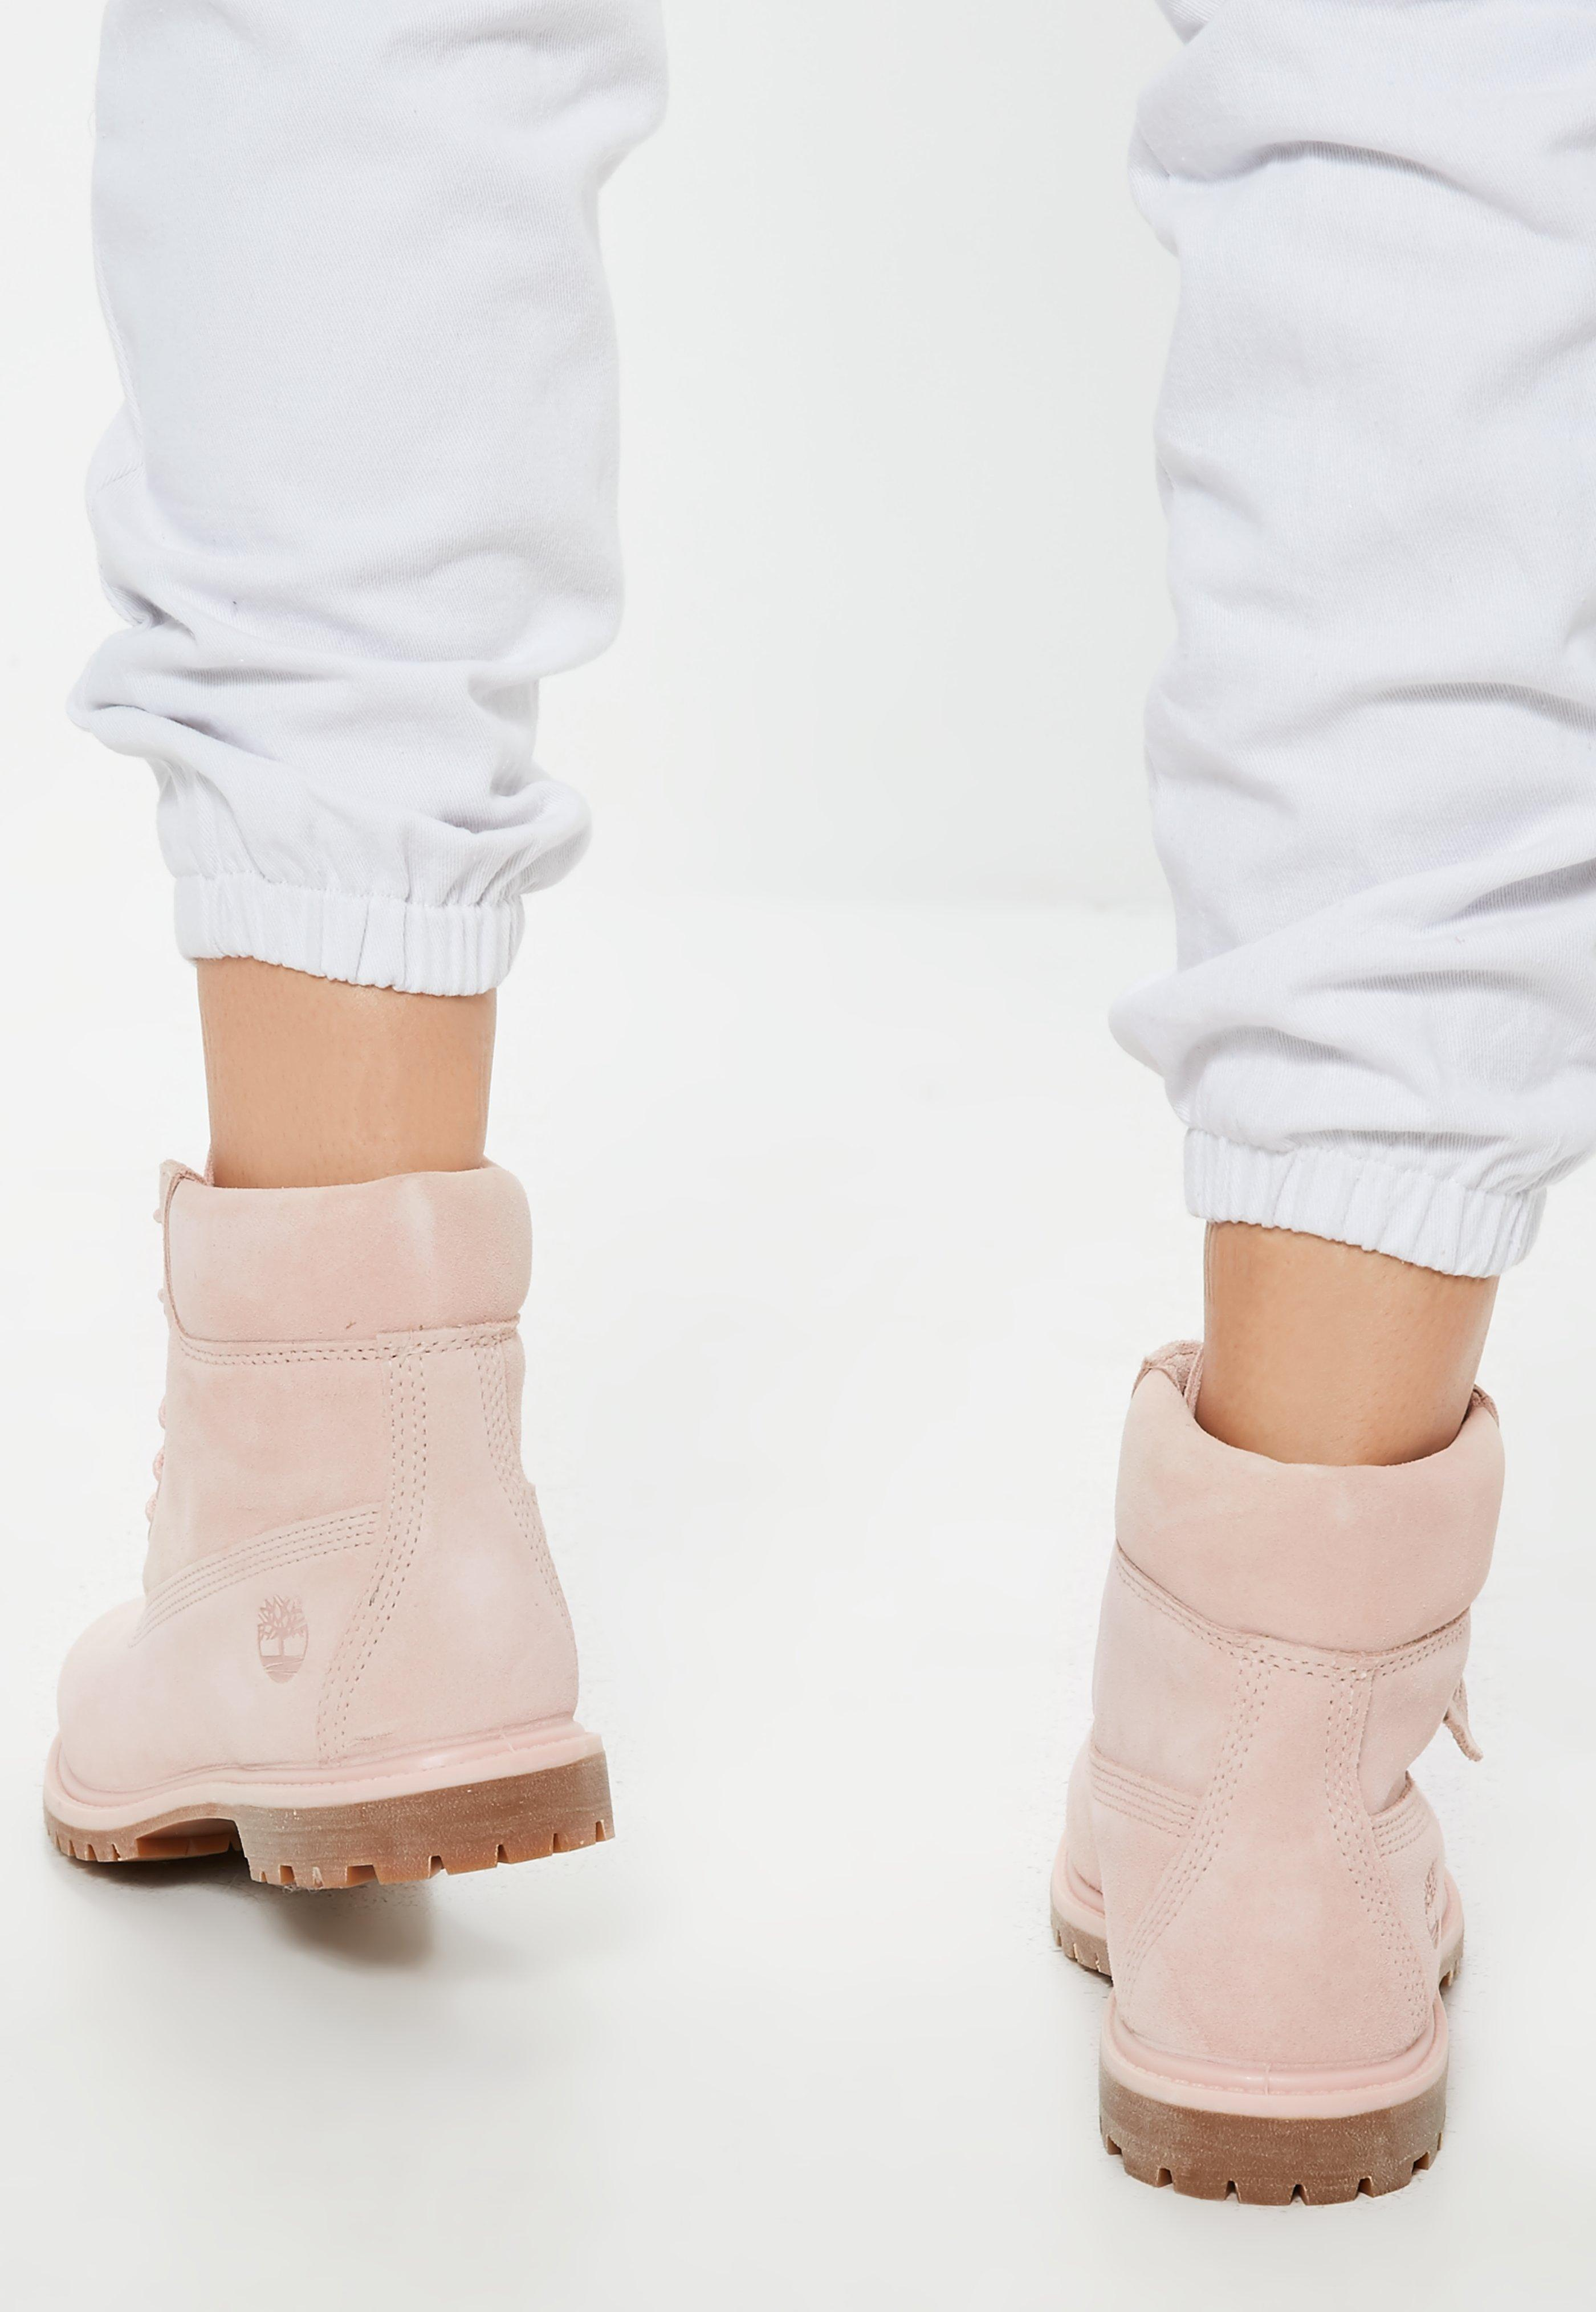 4a6ddcf235d Missguided Timberland Pink 6inch Premium Suede Boots in Pink - Lyst